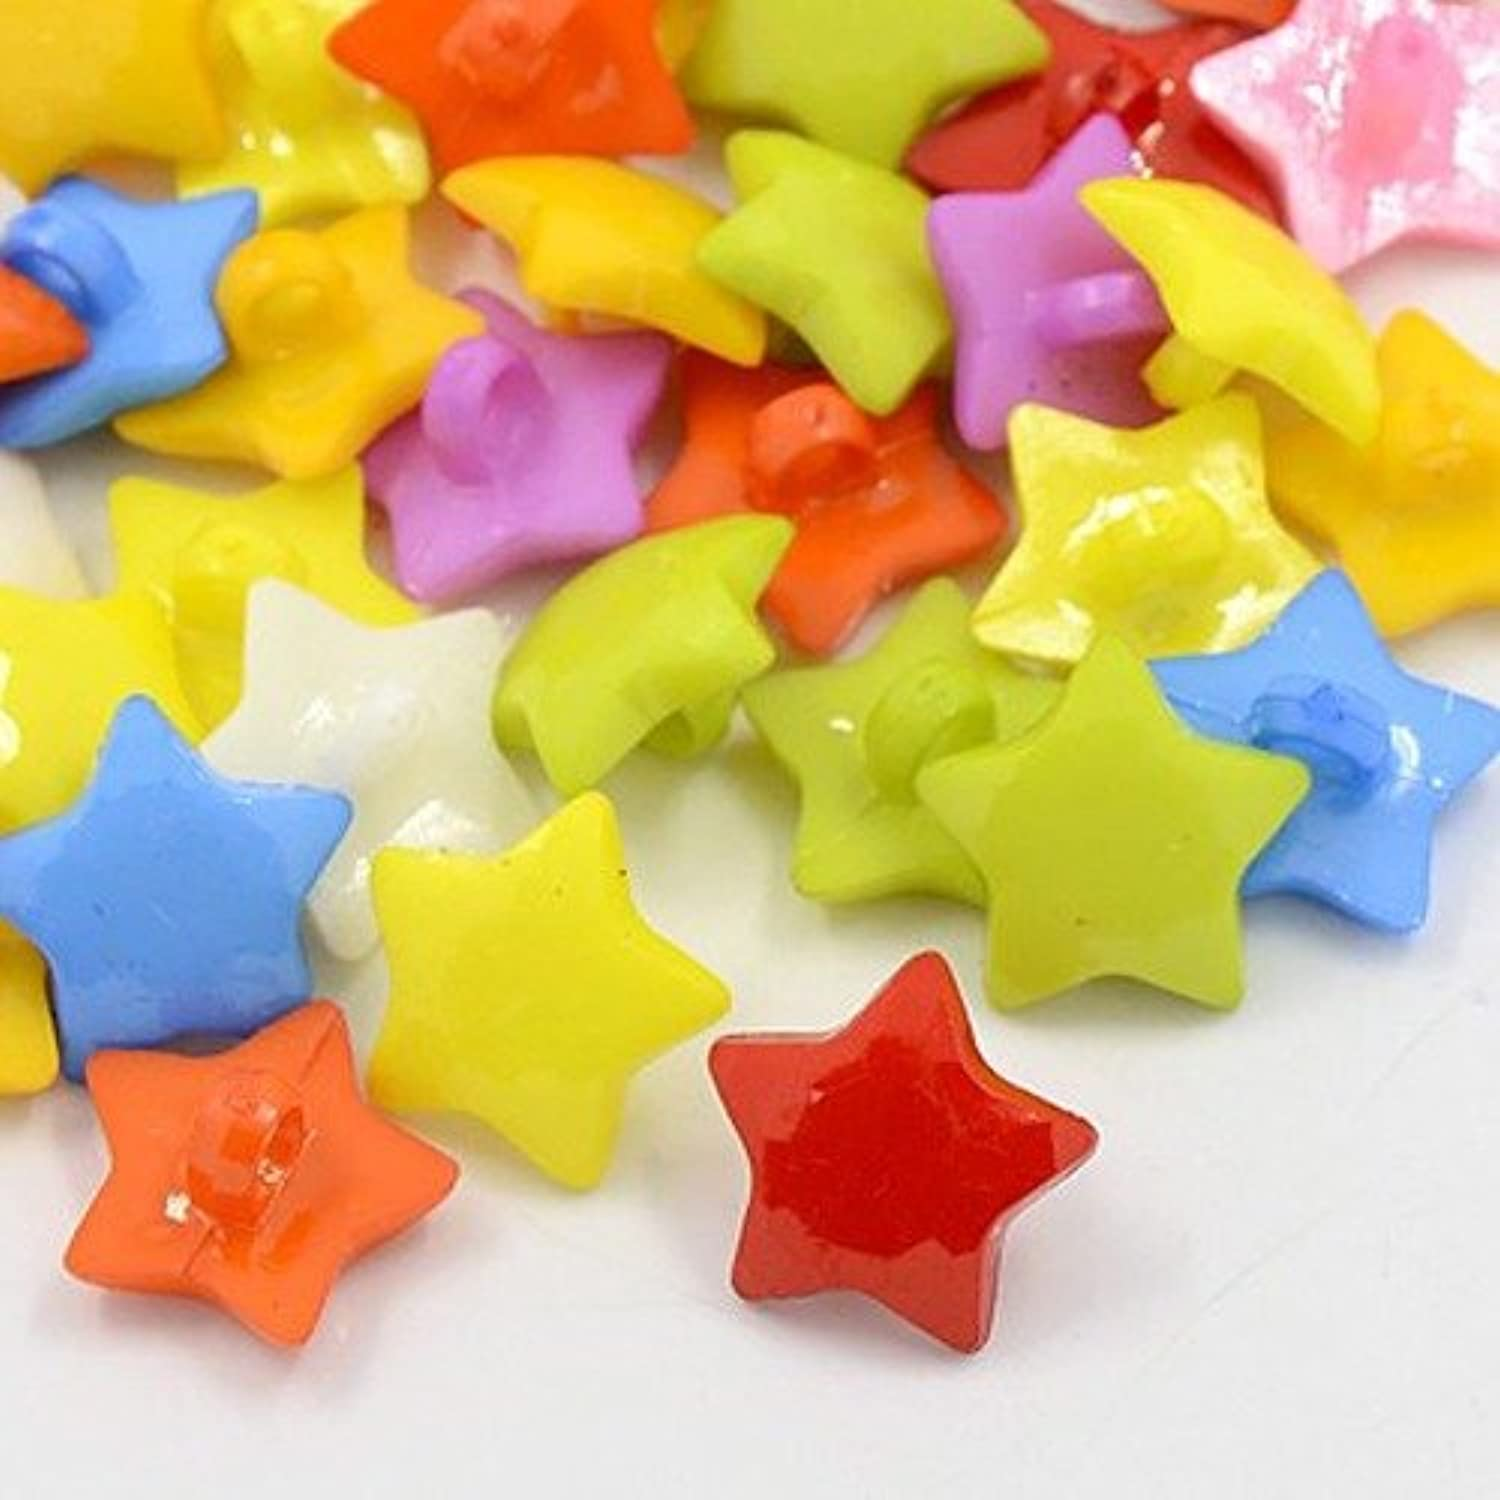 PEPPERLONELY Brand 100PC Mixed Color 1-Hole Faceted Acrylic Shank Dyed Star Buttons 16x3mm(5/8 x 1/8 Inch)